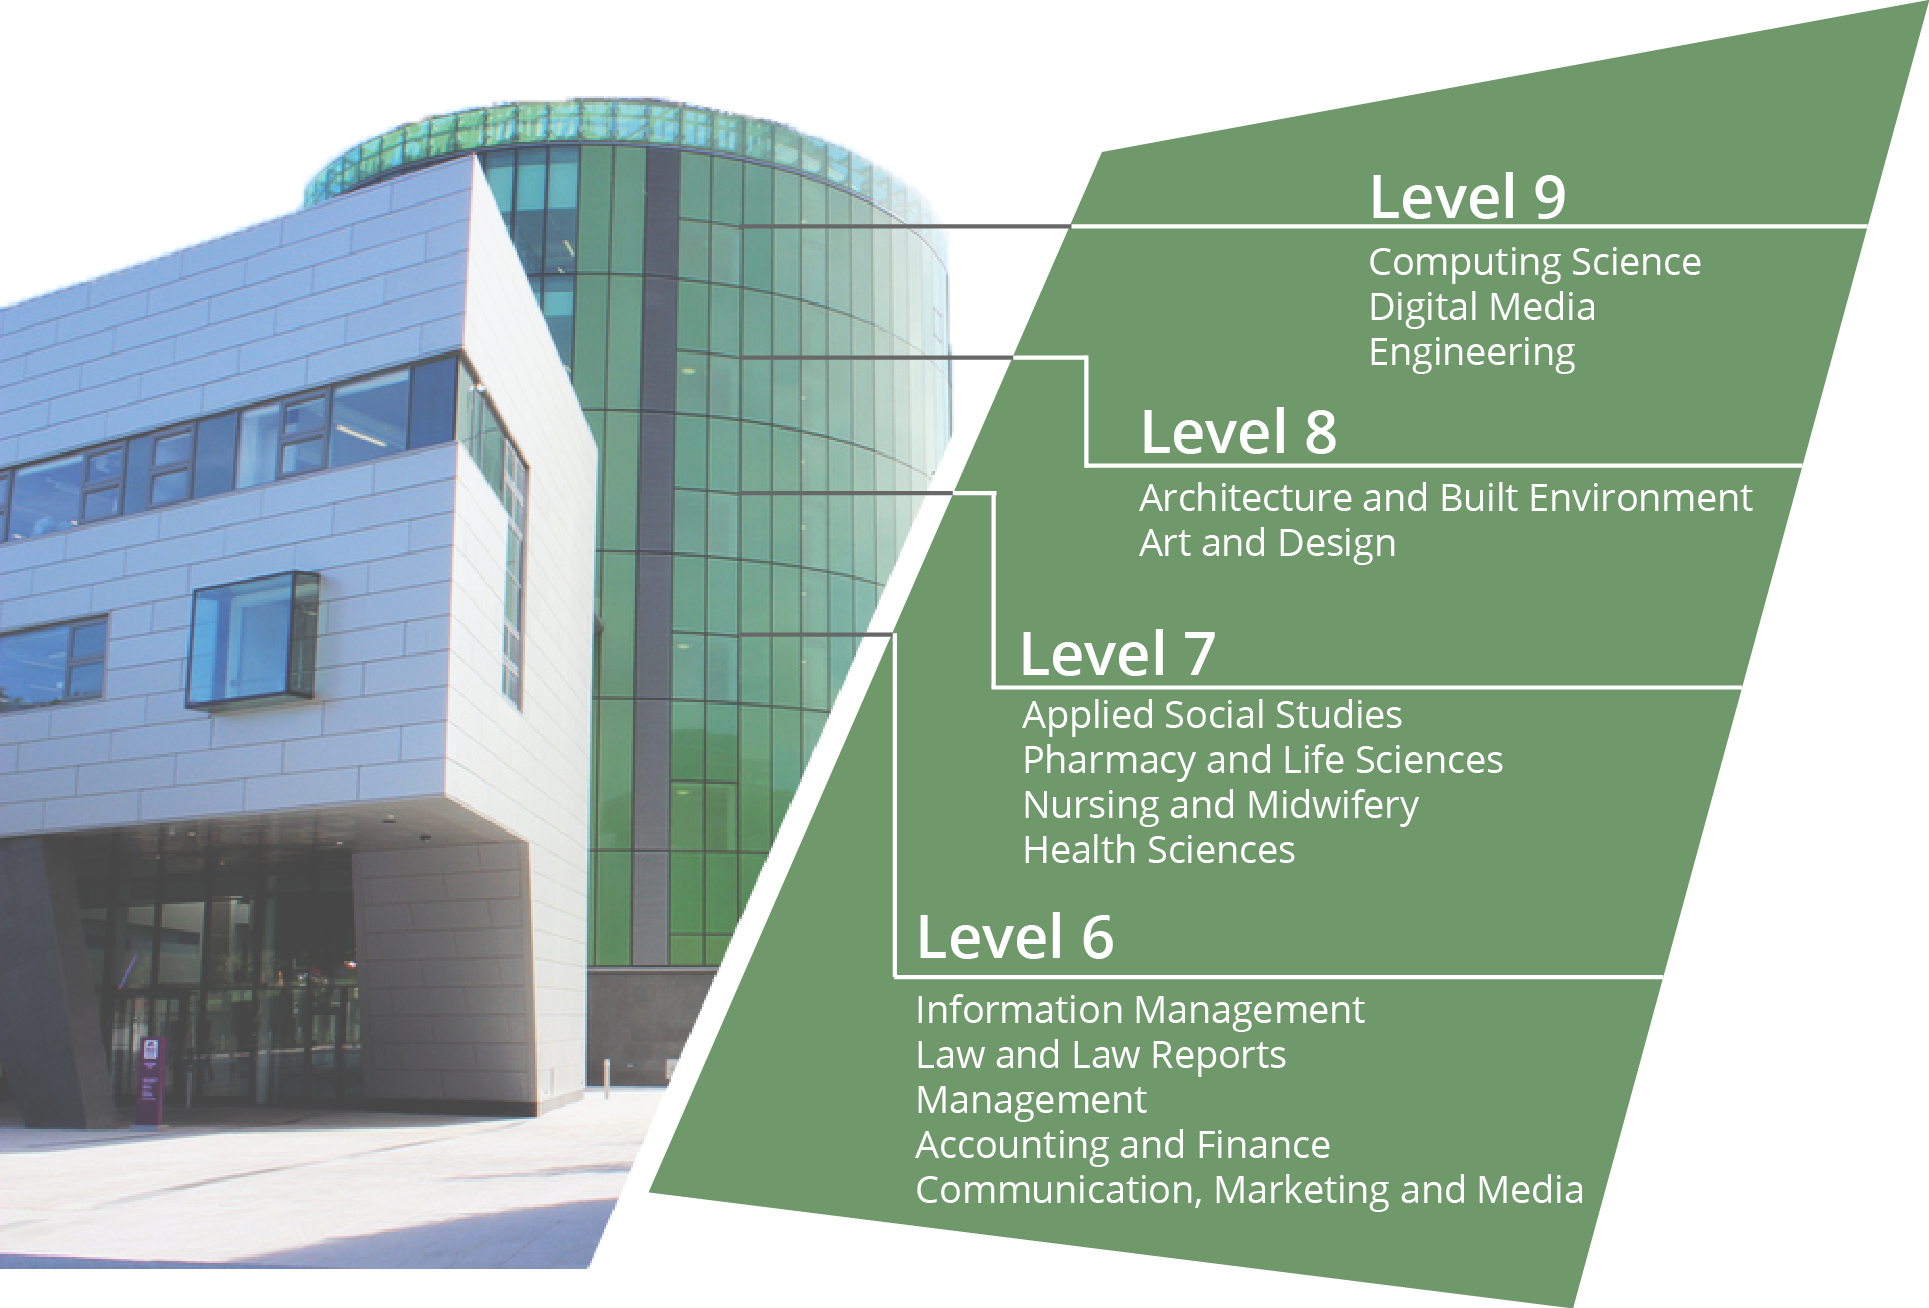 Library Plan: Level 6 - Information management, law and law reports, management, accounting and finance, and communication, marketing and media. Level 7 - Applied social studies, pharmacy and life sciences, nursing and midwifery, and health sciences. Level 8 - Architecture and built environment, and art and design. Level 9 - Computing science, digital media, and engineering.